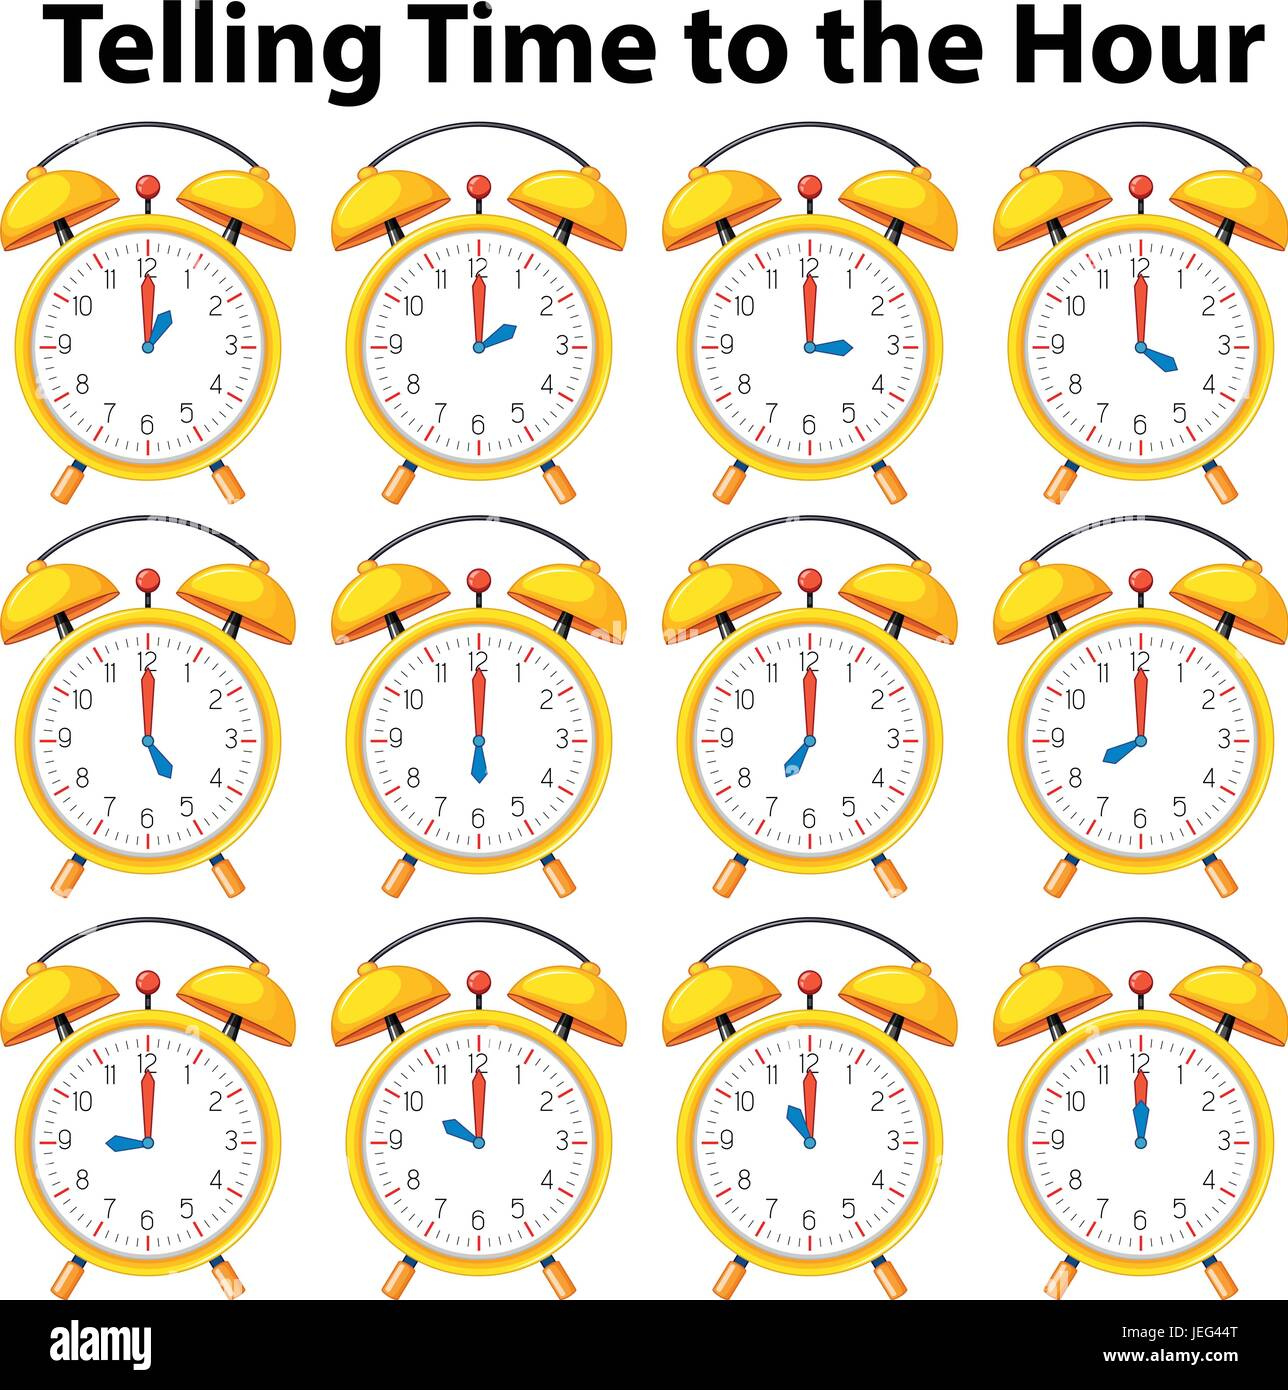 Telling time to the hour on yellow clock illustration Stock Vector ...